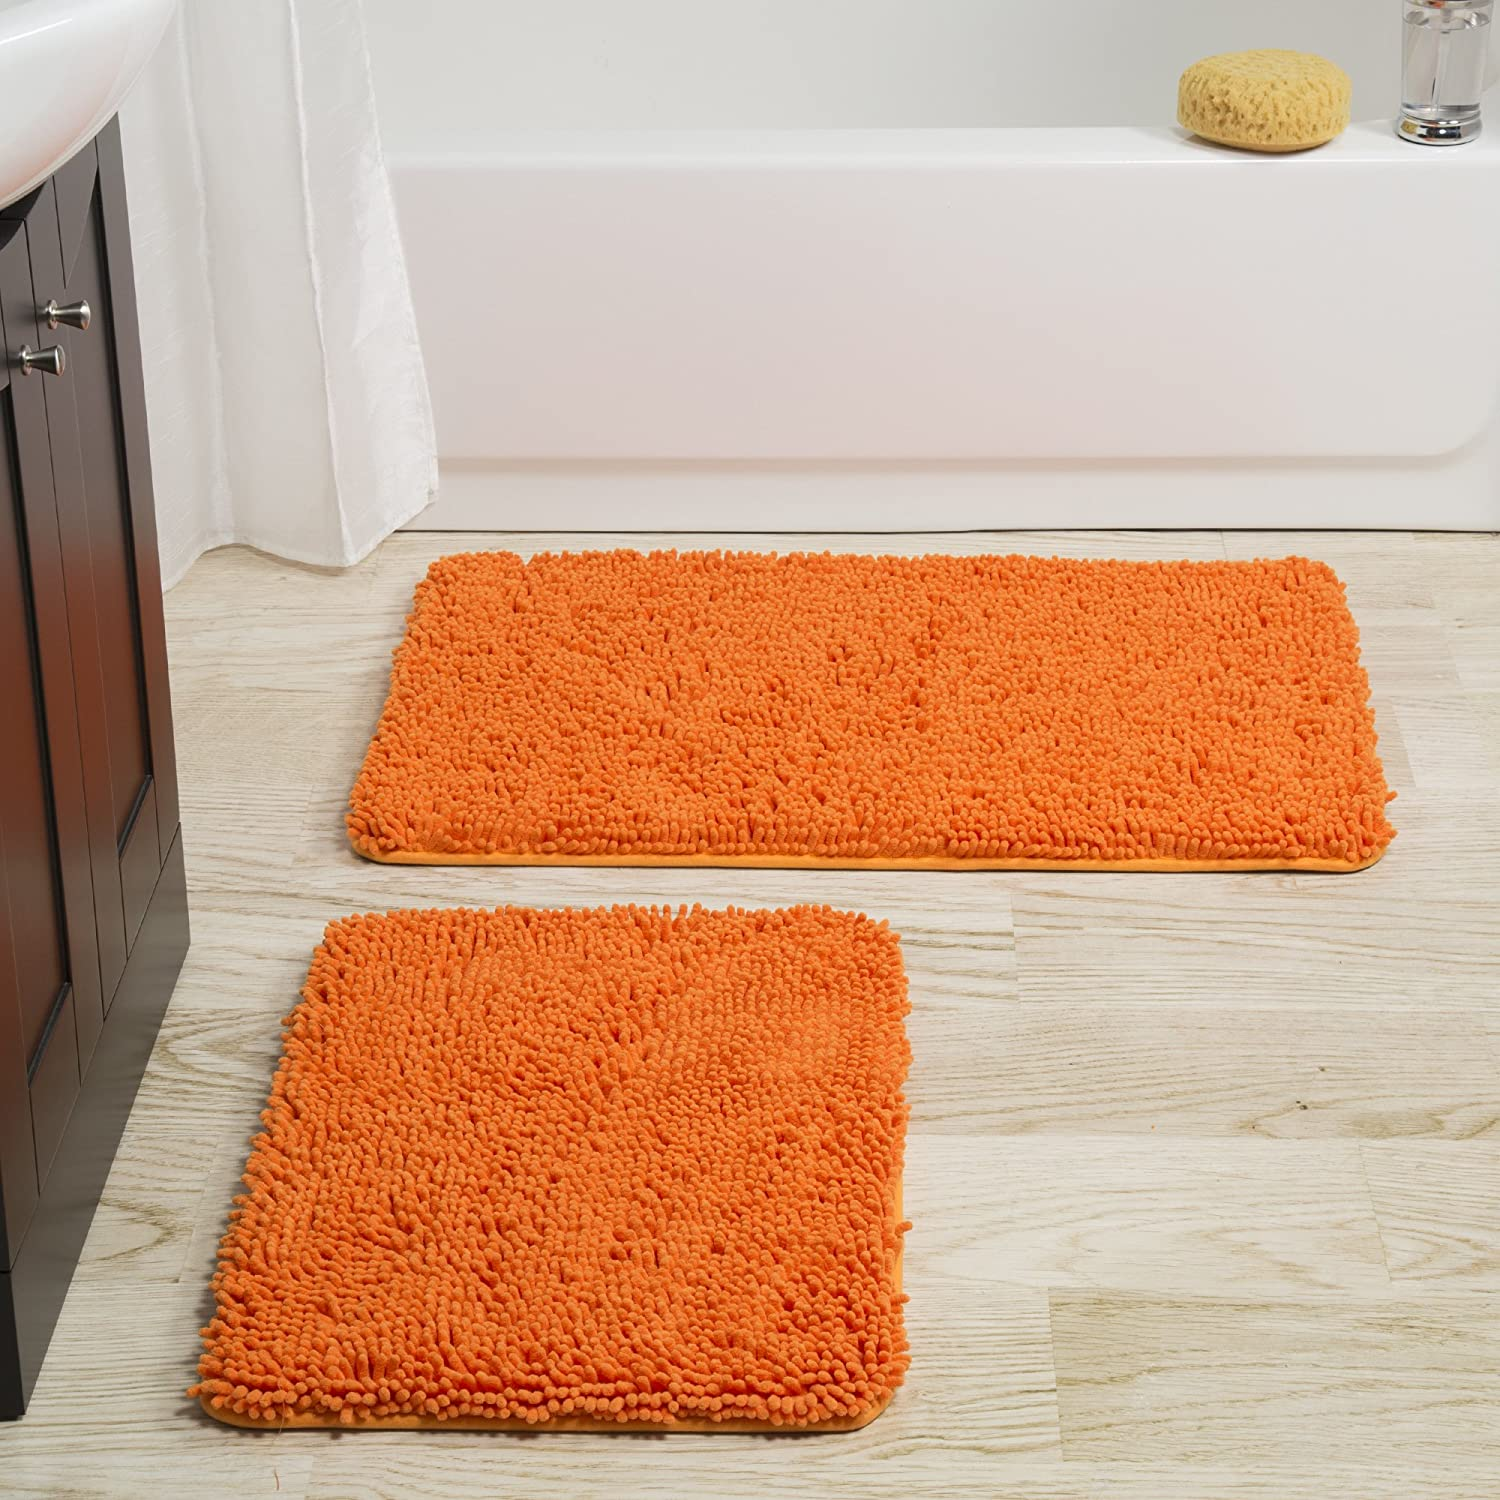 Charmant Amazon.com: Lavish Home 2 Piece Memory Foam Shag Bath Mat Orange: Home U0026  Kitchen